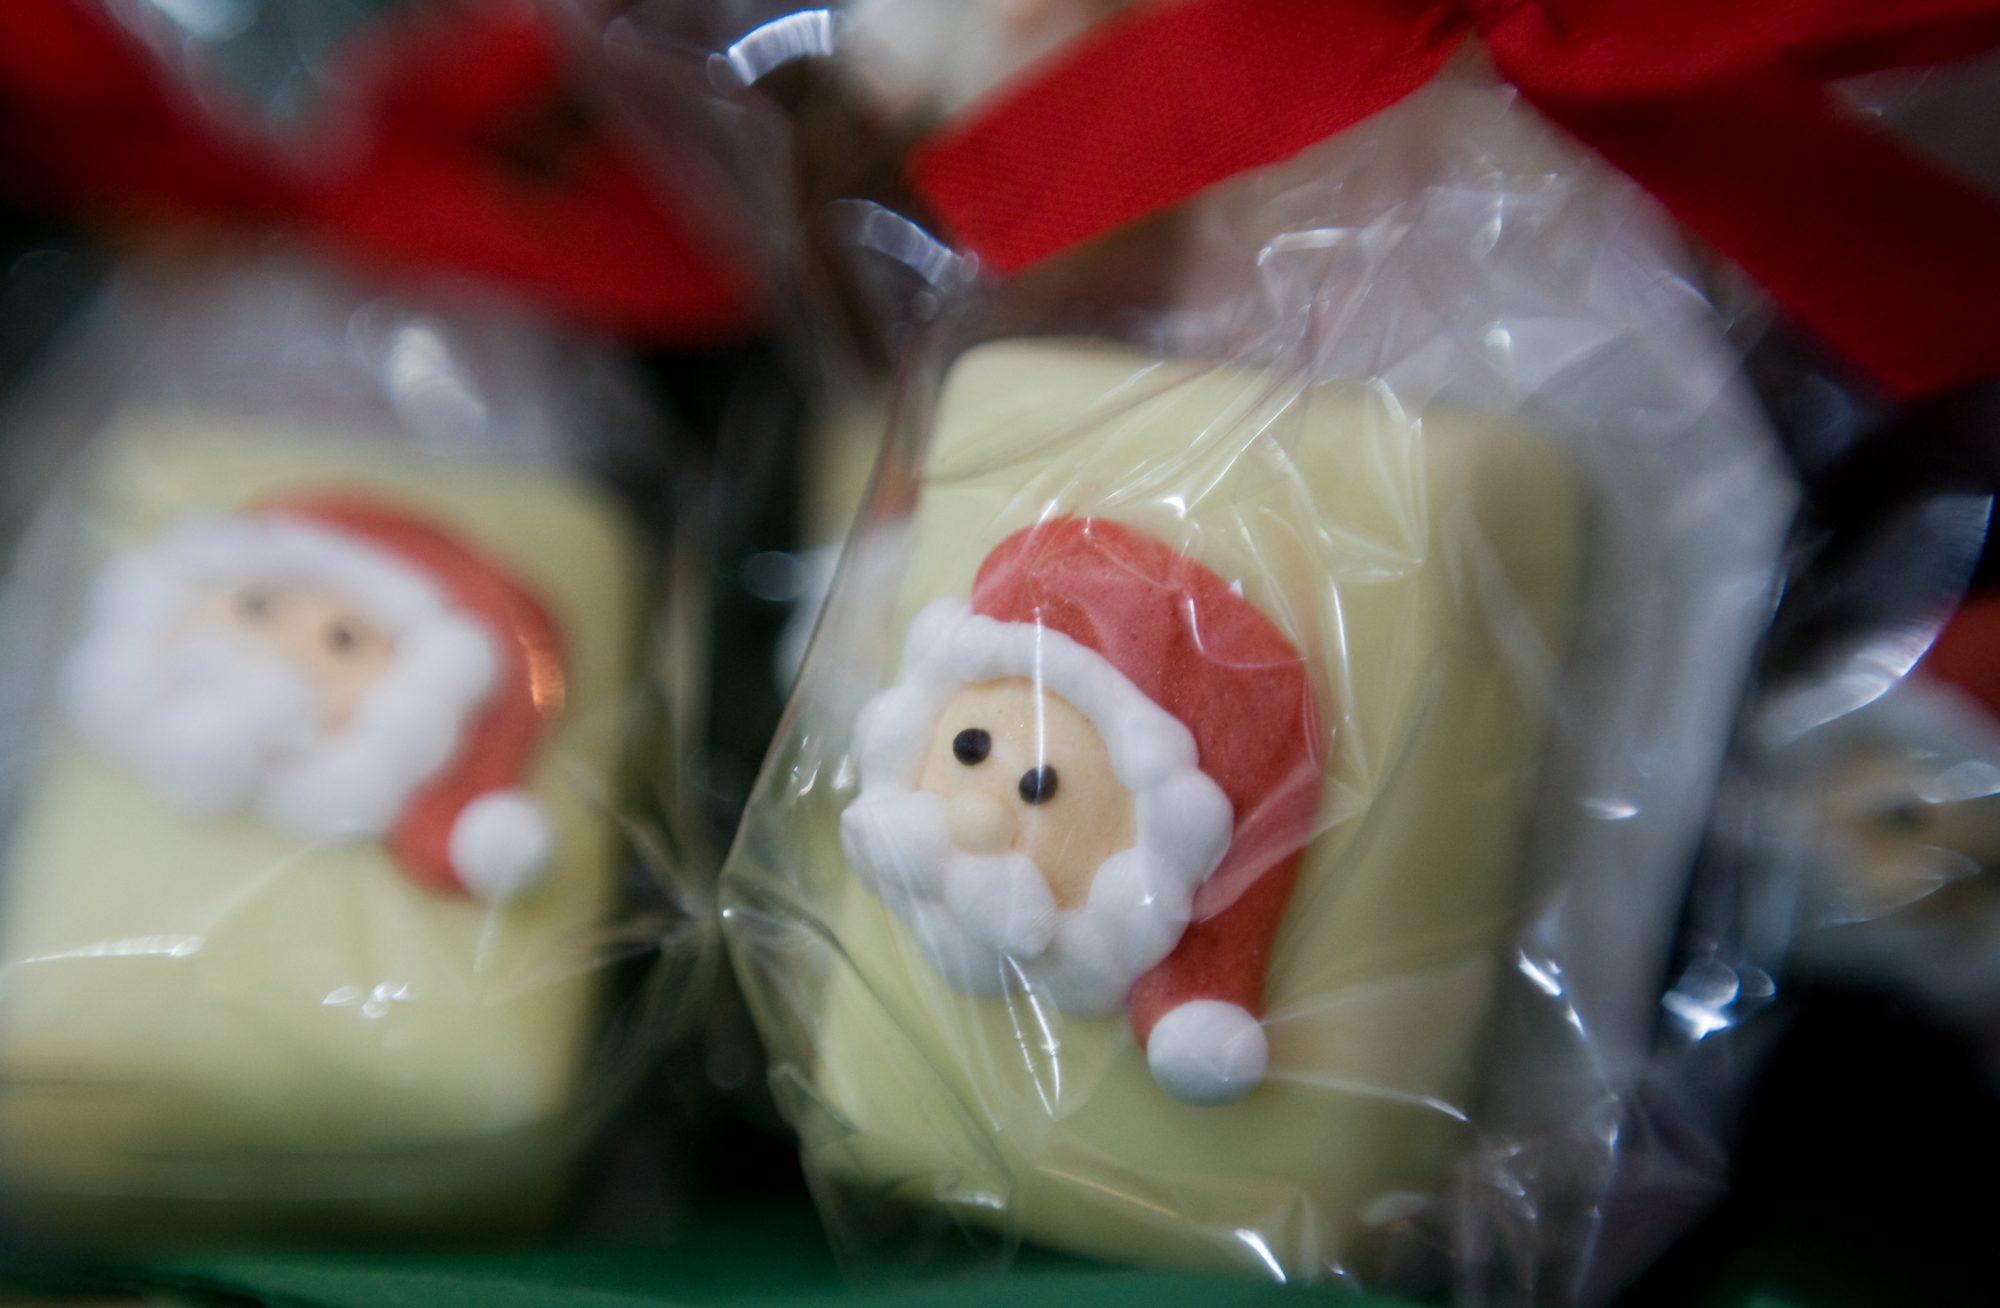 Marzipan Christmas Candy Getty 8/6/19